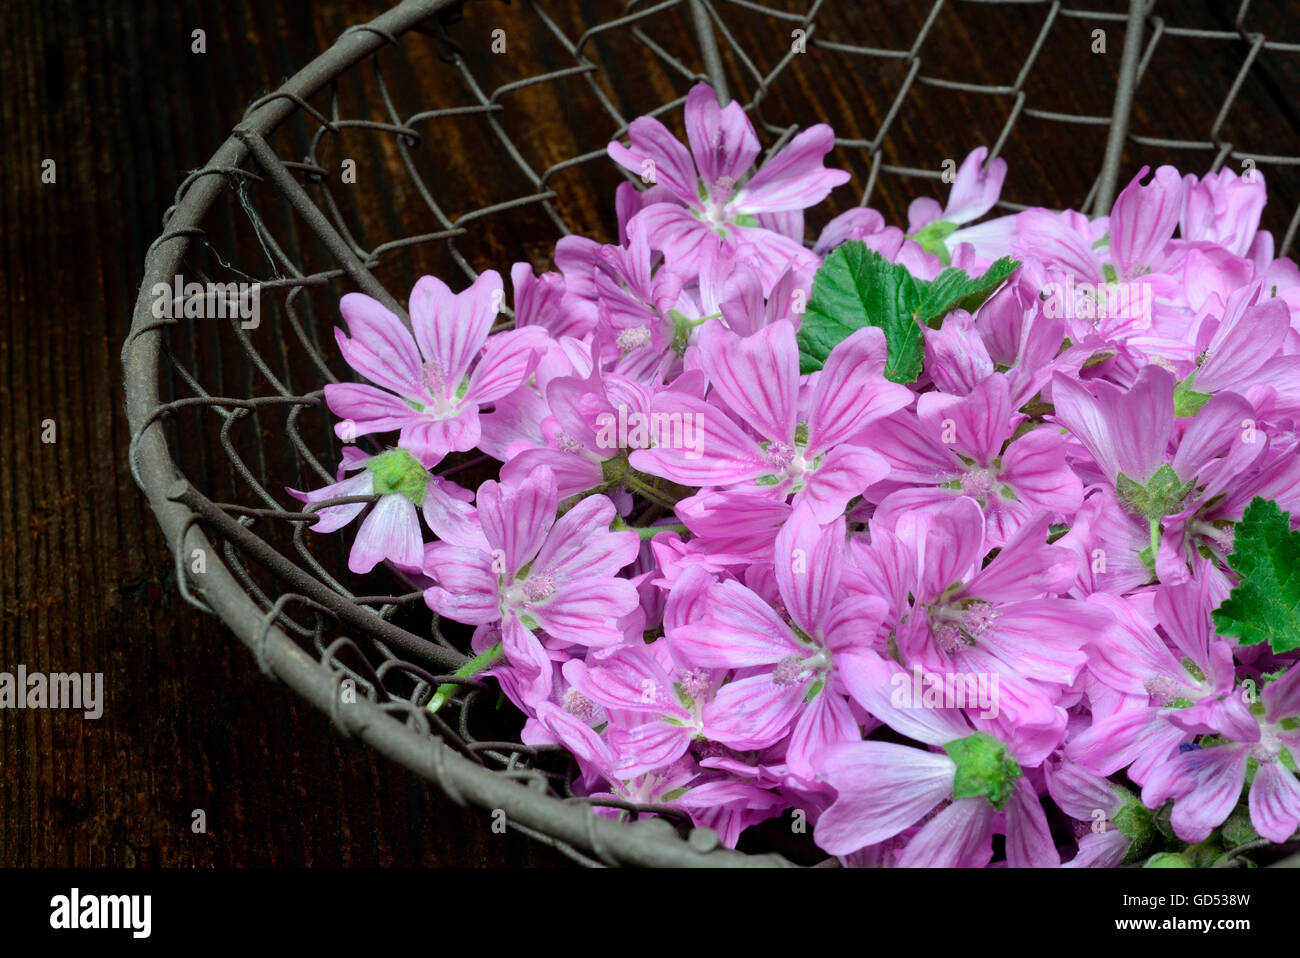 Common Mallow, Malva sylvestris - Stock Image